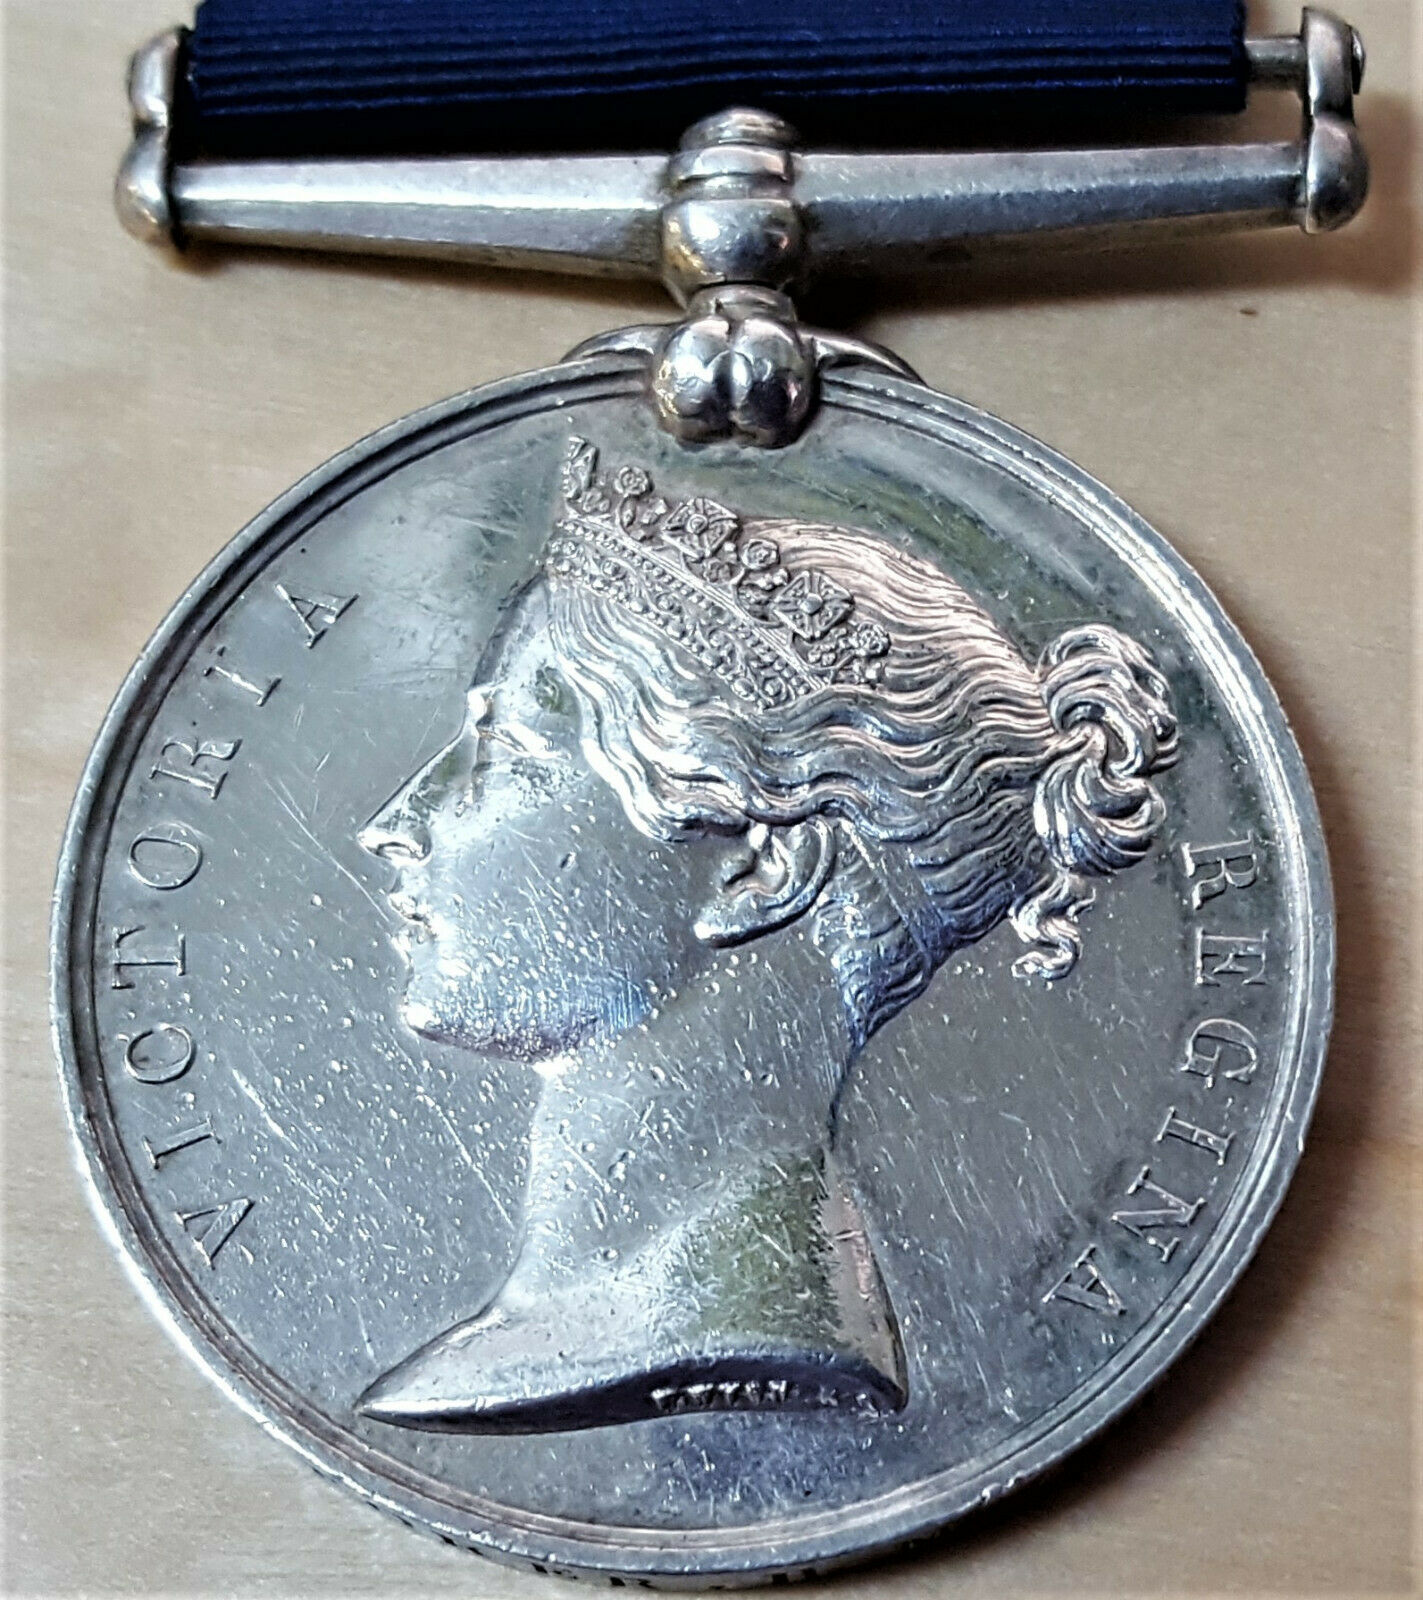 PRE WW1 BRITISH NAVY LONG SERVICE GOOD CONDUCT MEDAL STOKER JOHNSON HMS FEARLESS